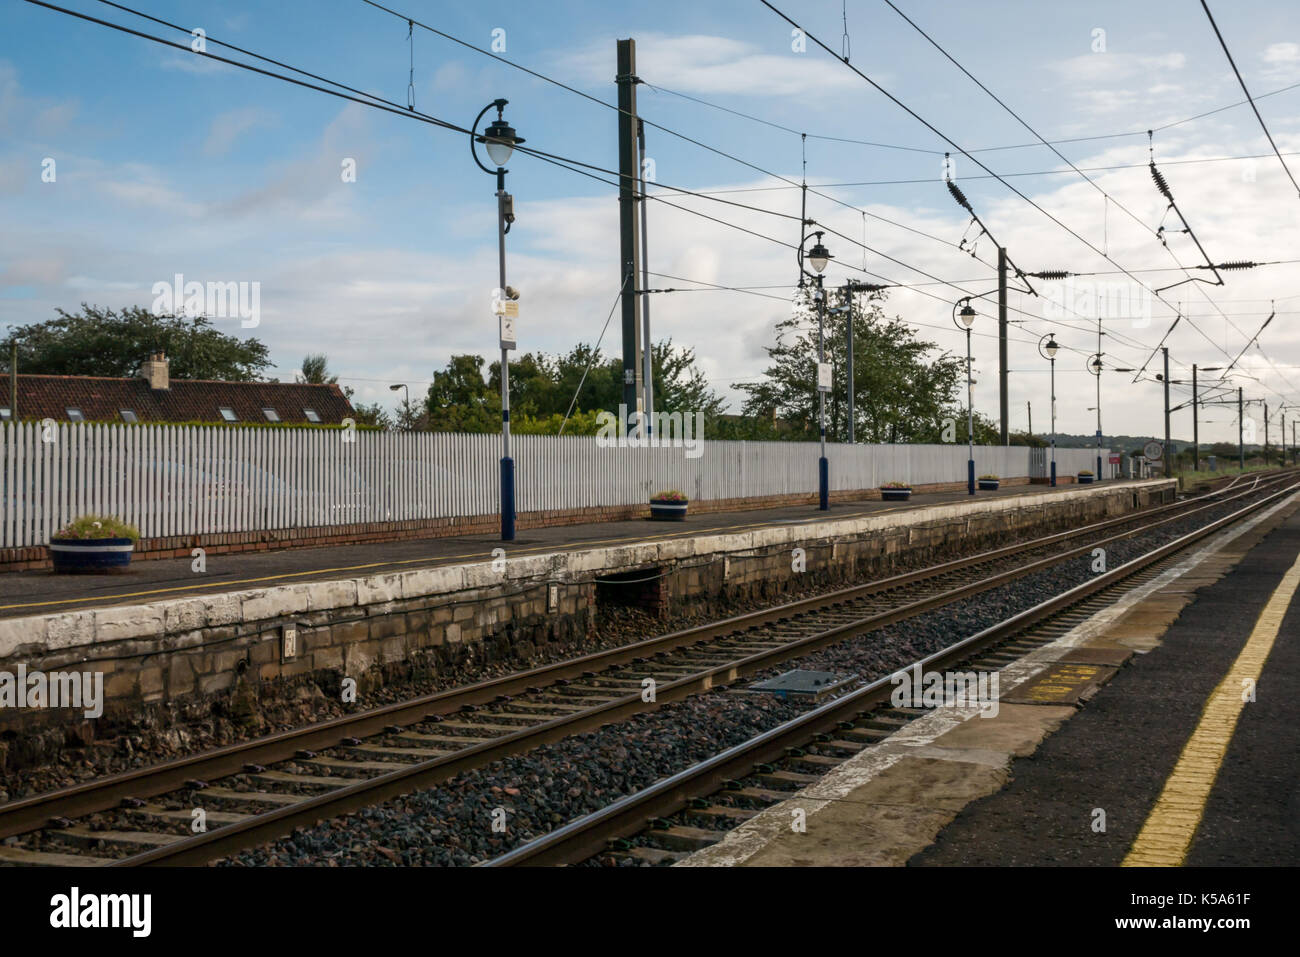 ScotRail Drem station train platform and railway tracks, East Lothian. Scotland, United Kingdom - Stock Image